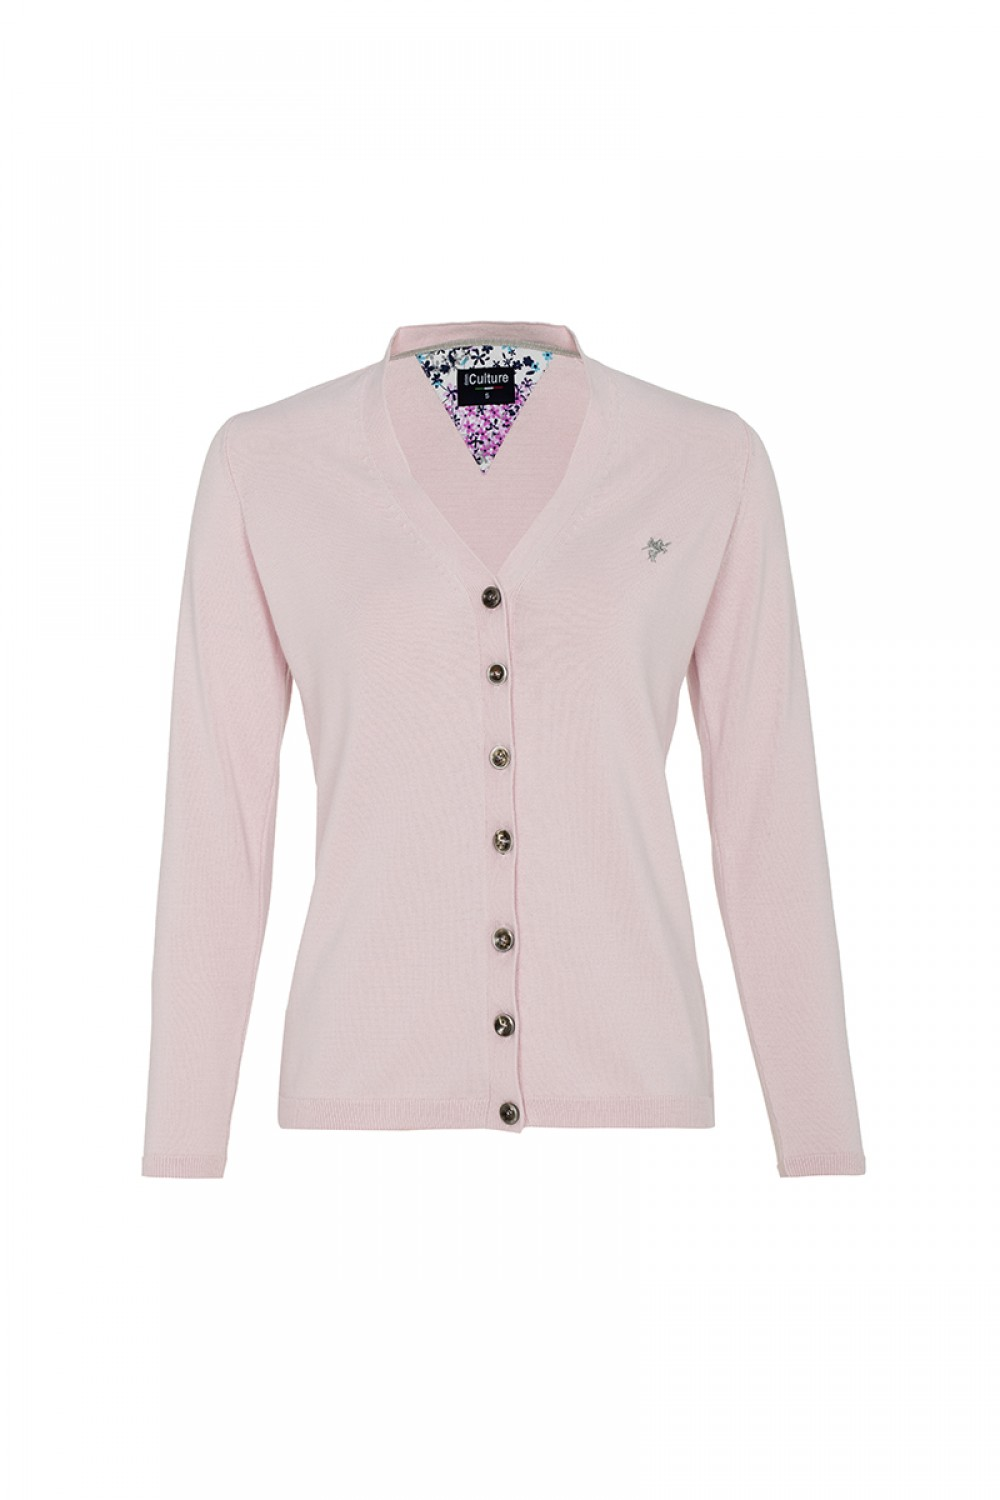 Women's Cardigan Button V-neck Powder